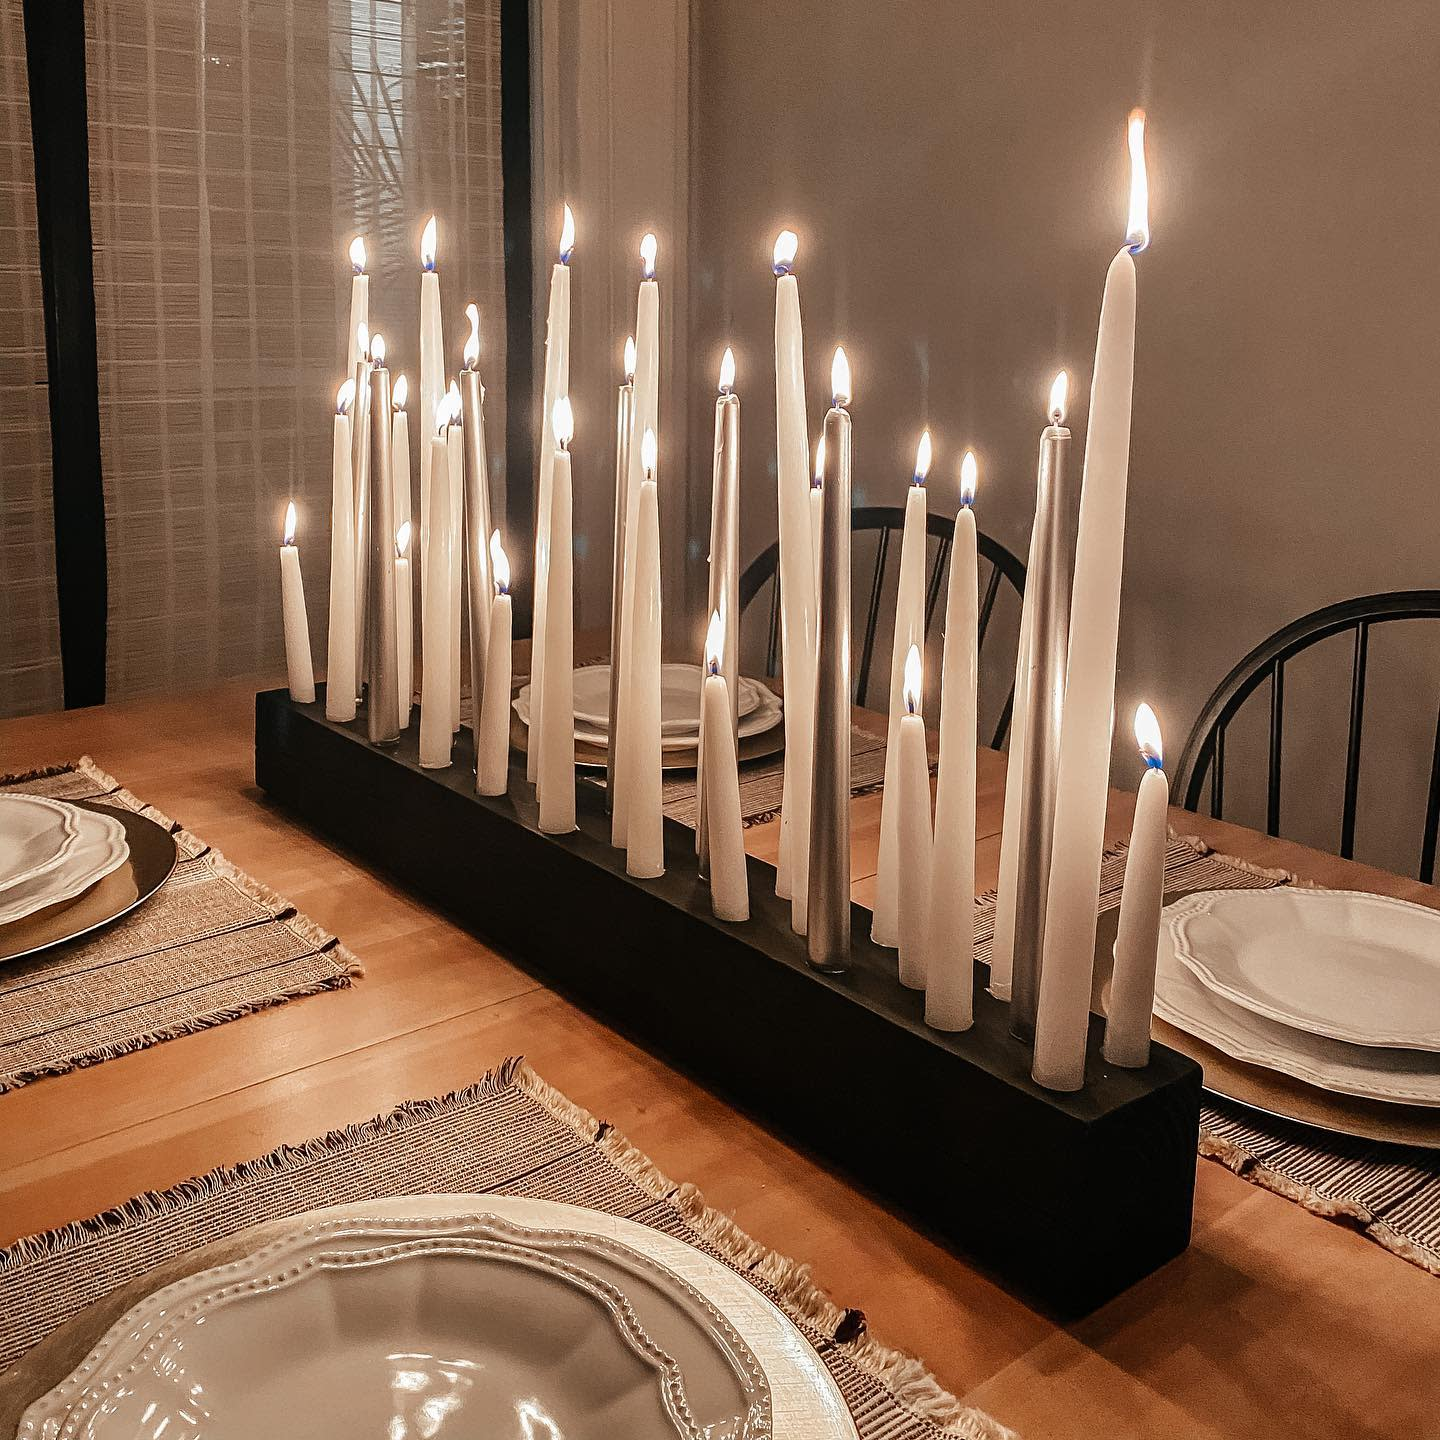 Candles Dining Table Centerpiece Ideas -scolahouse